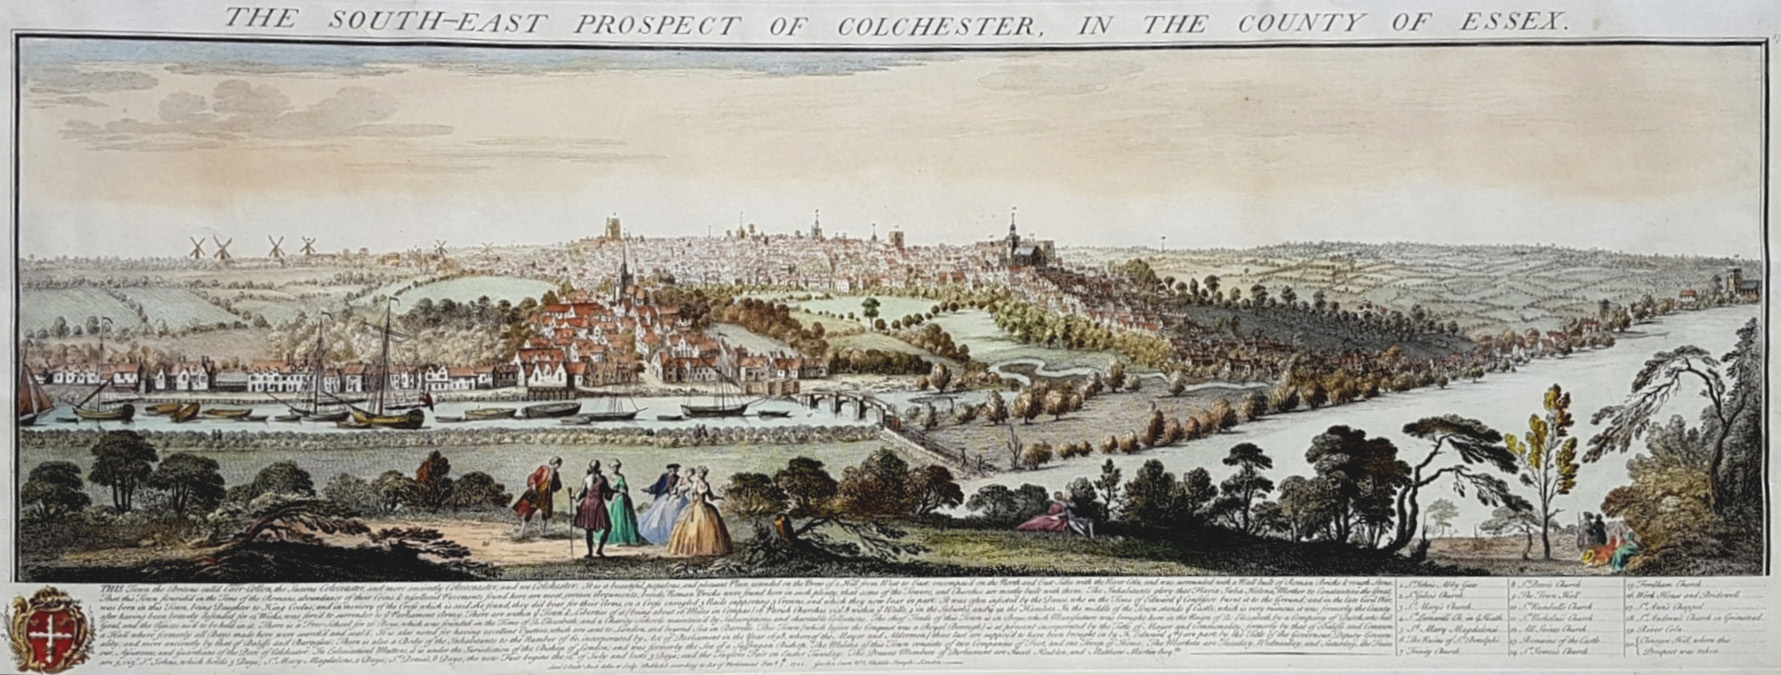 Buck's Prospect of Colchester in Essex, c1741. (large)